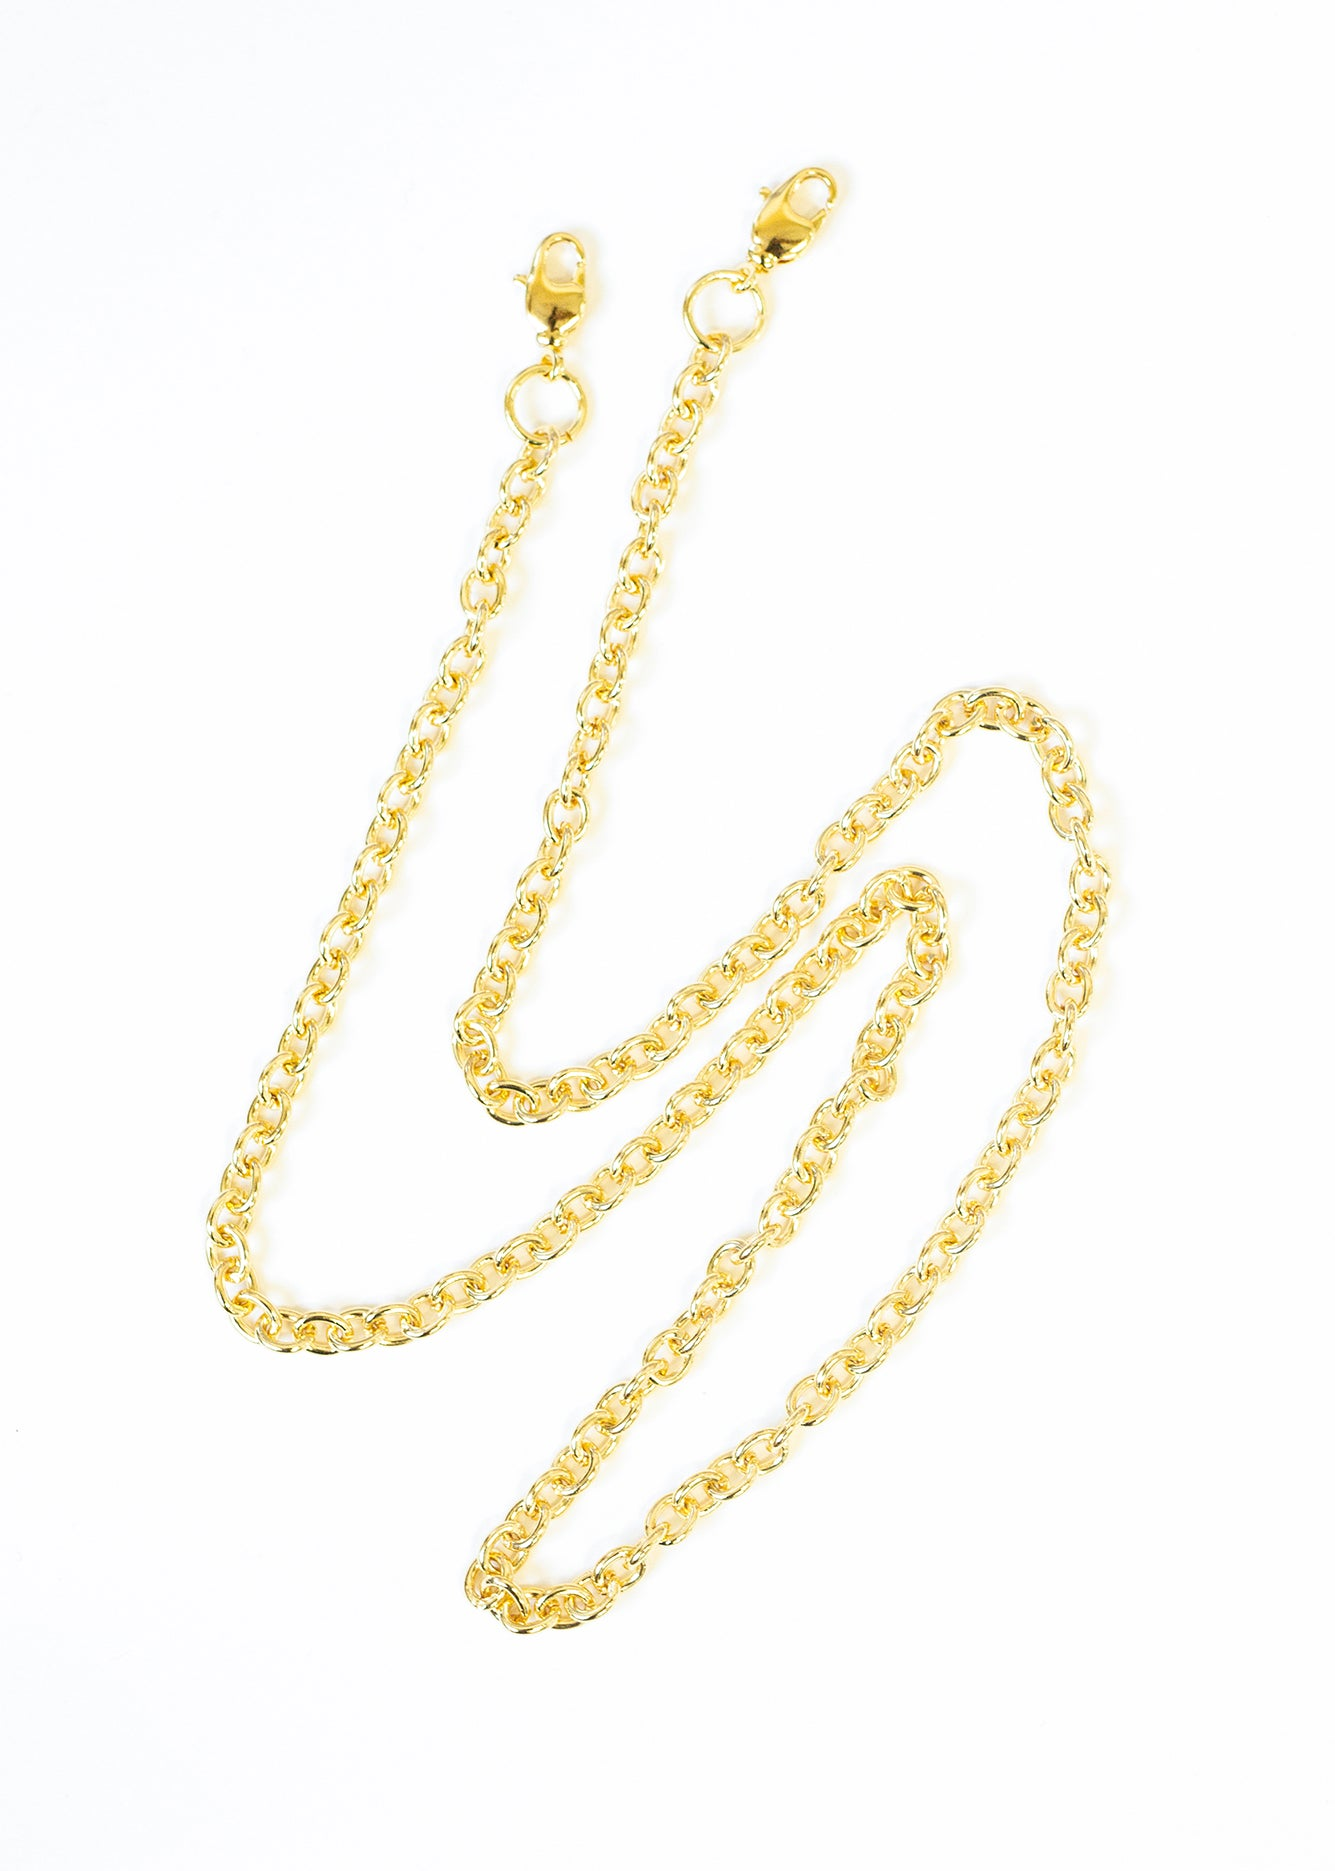 18K Face Mask Chain